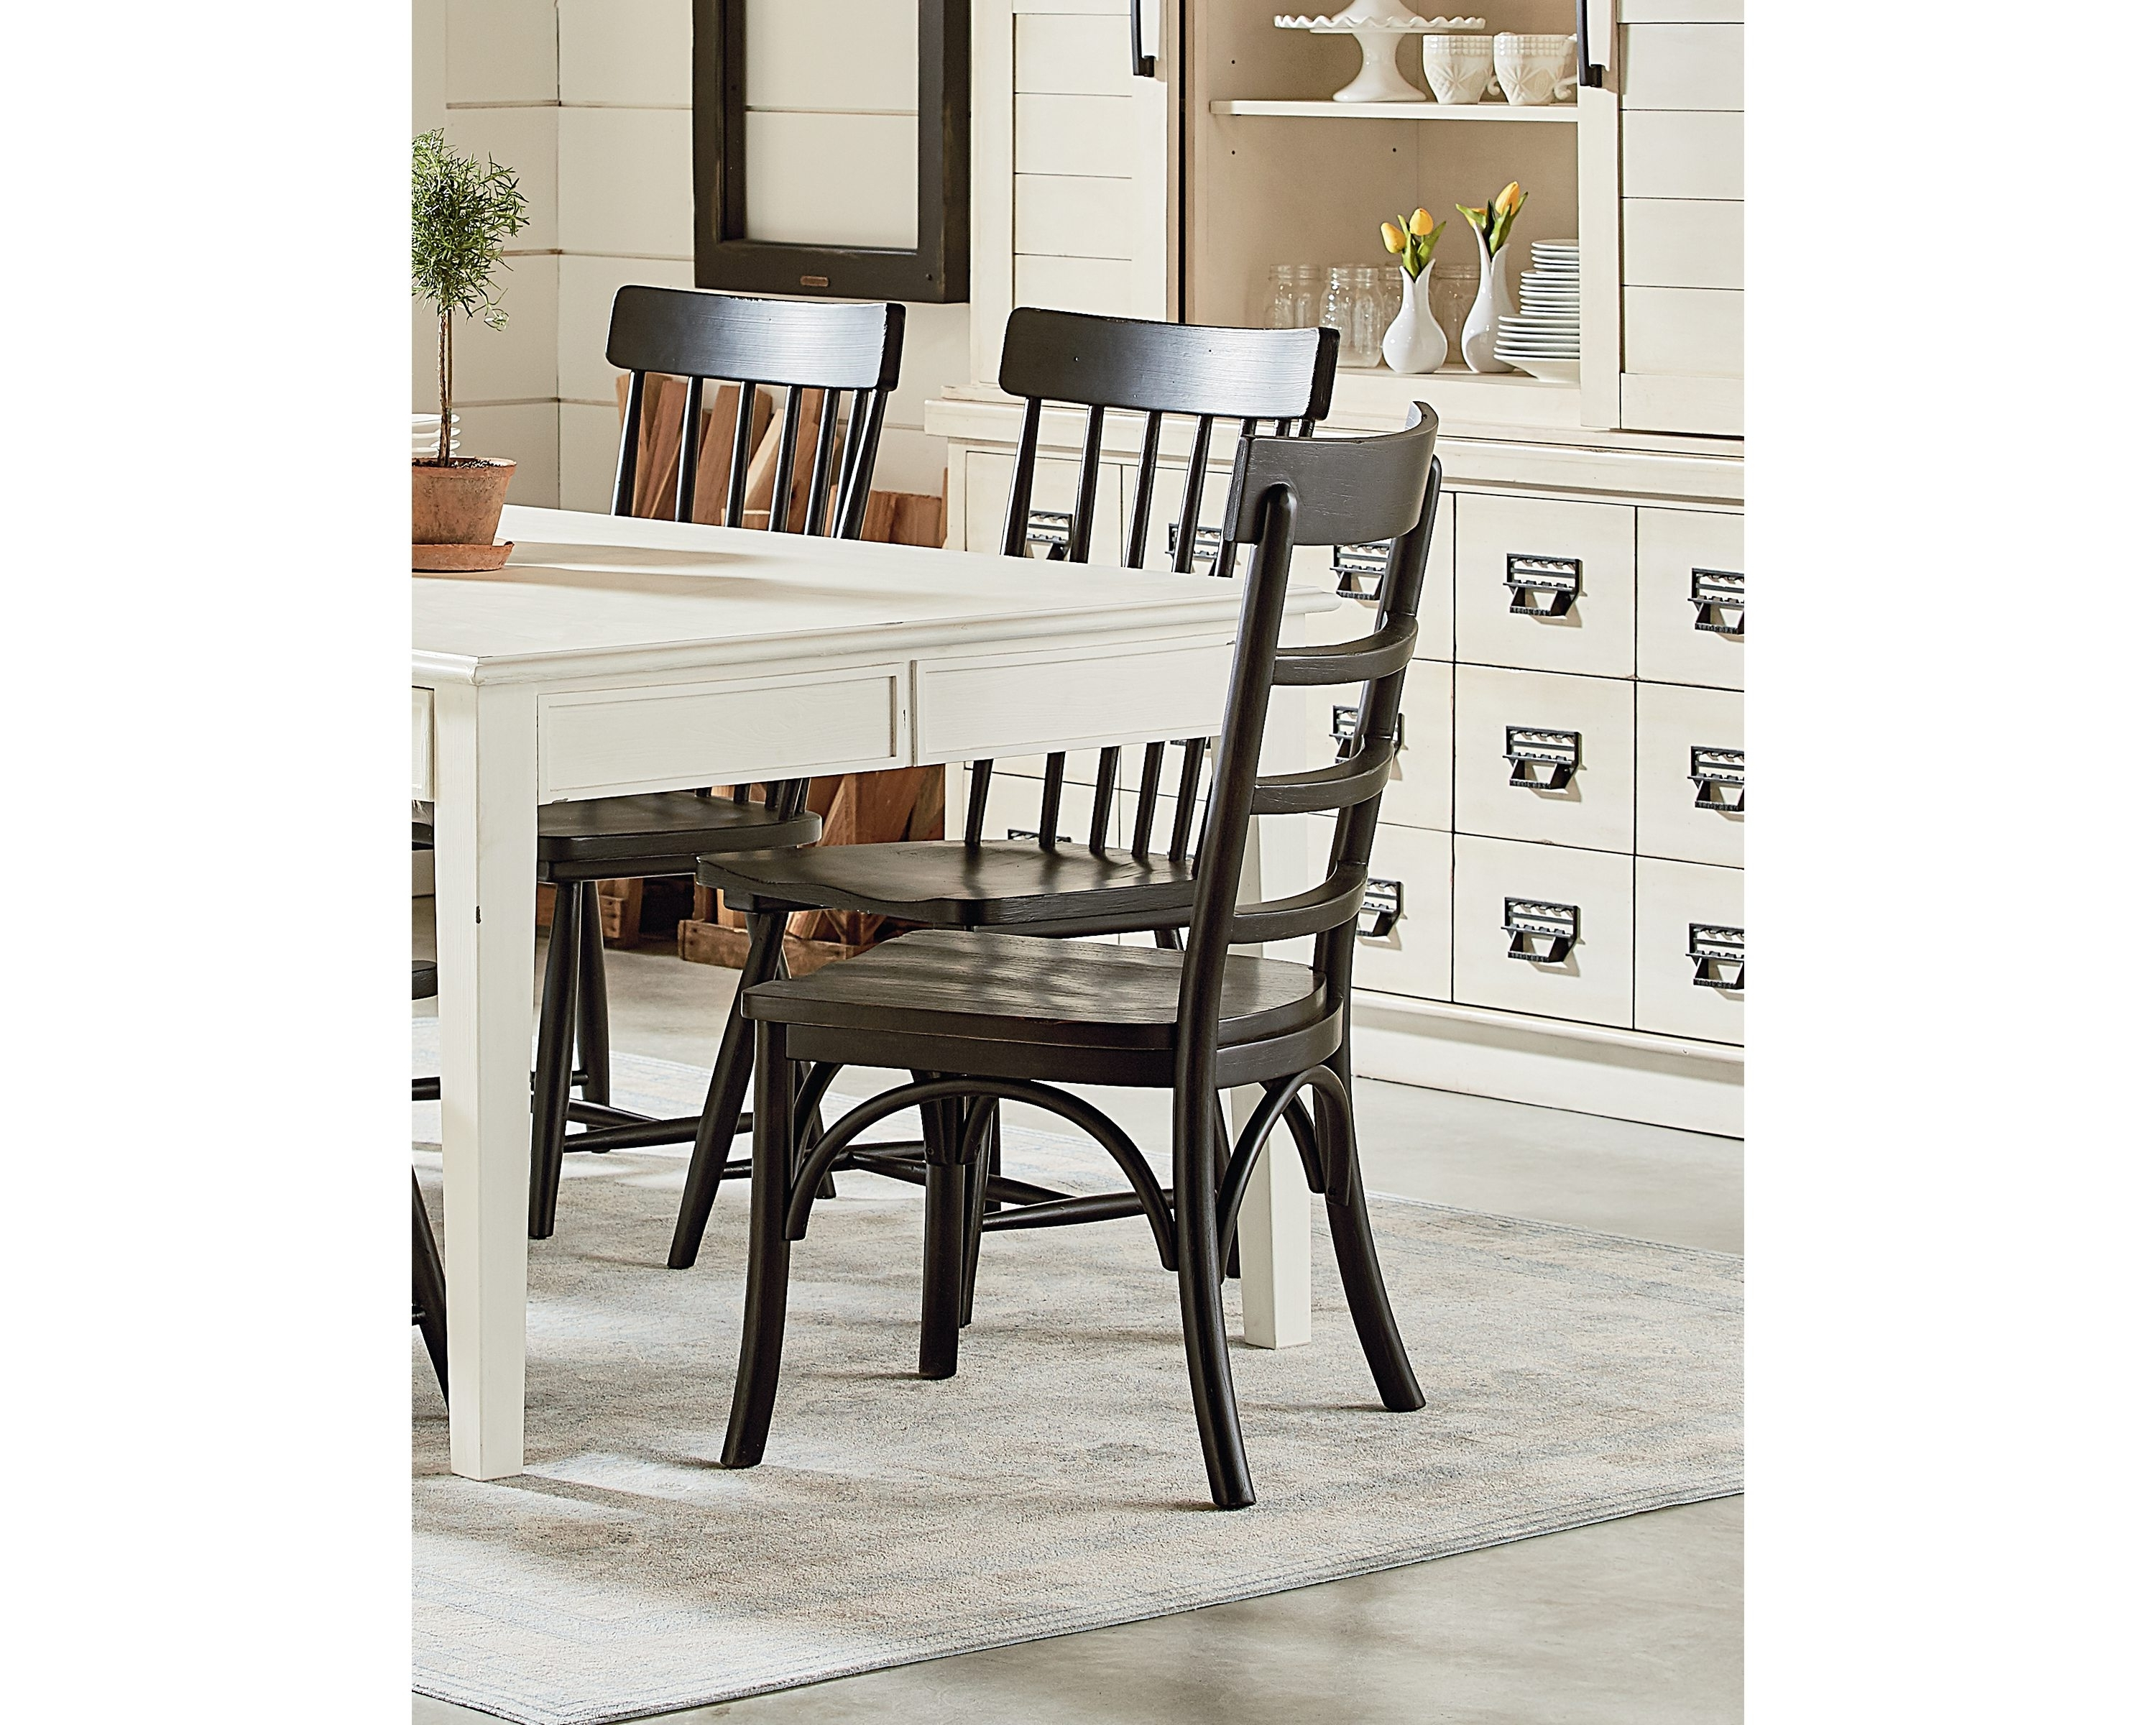 Magnolia Home Harper Chimney Side Chairs Inside 2018 Harper Side Chair – Magnolia Home (View 6 of 20)